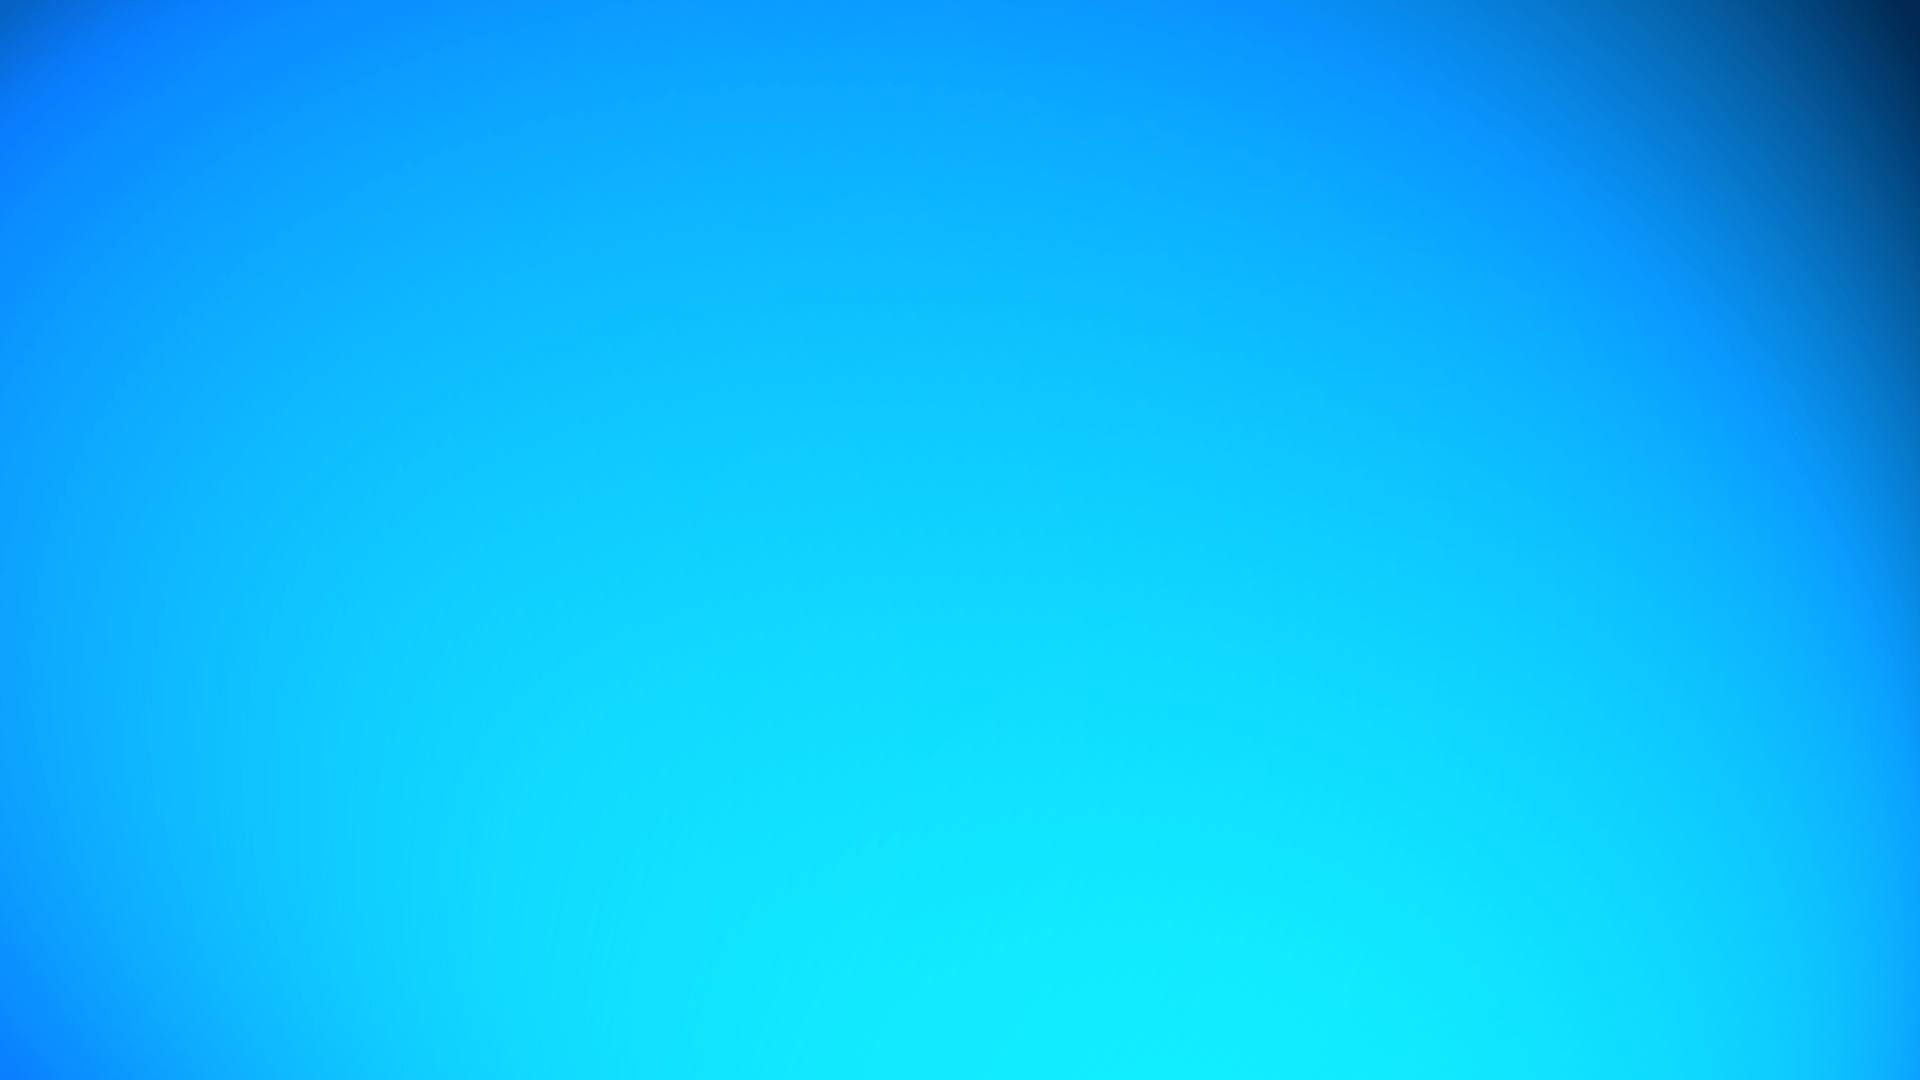 wallpaper background gradient blue - photo #1